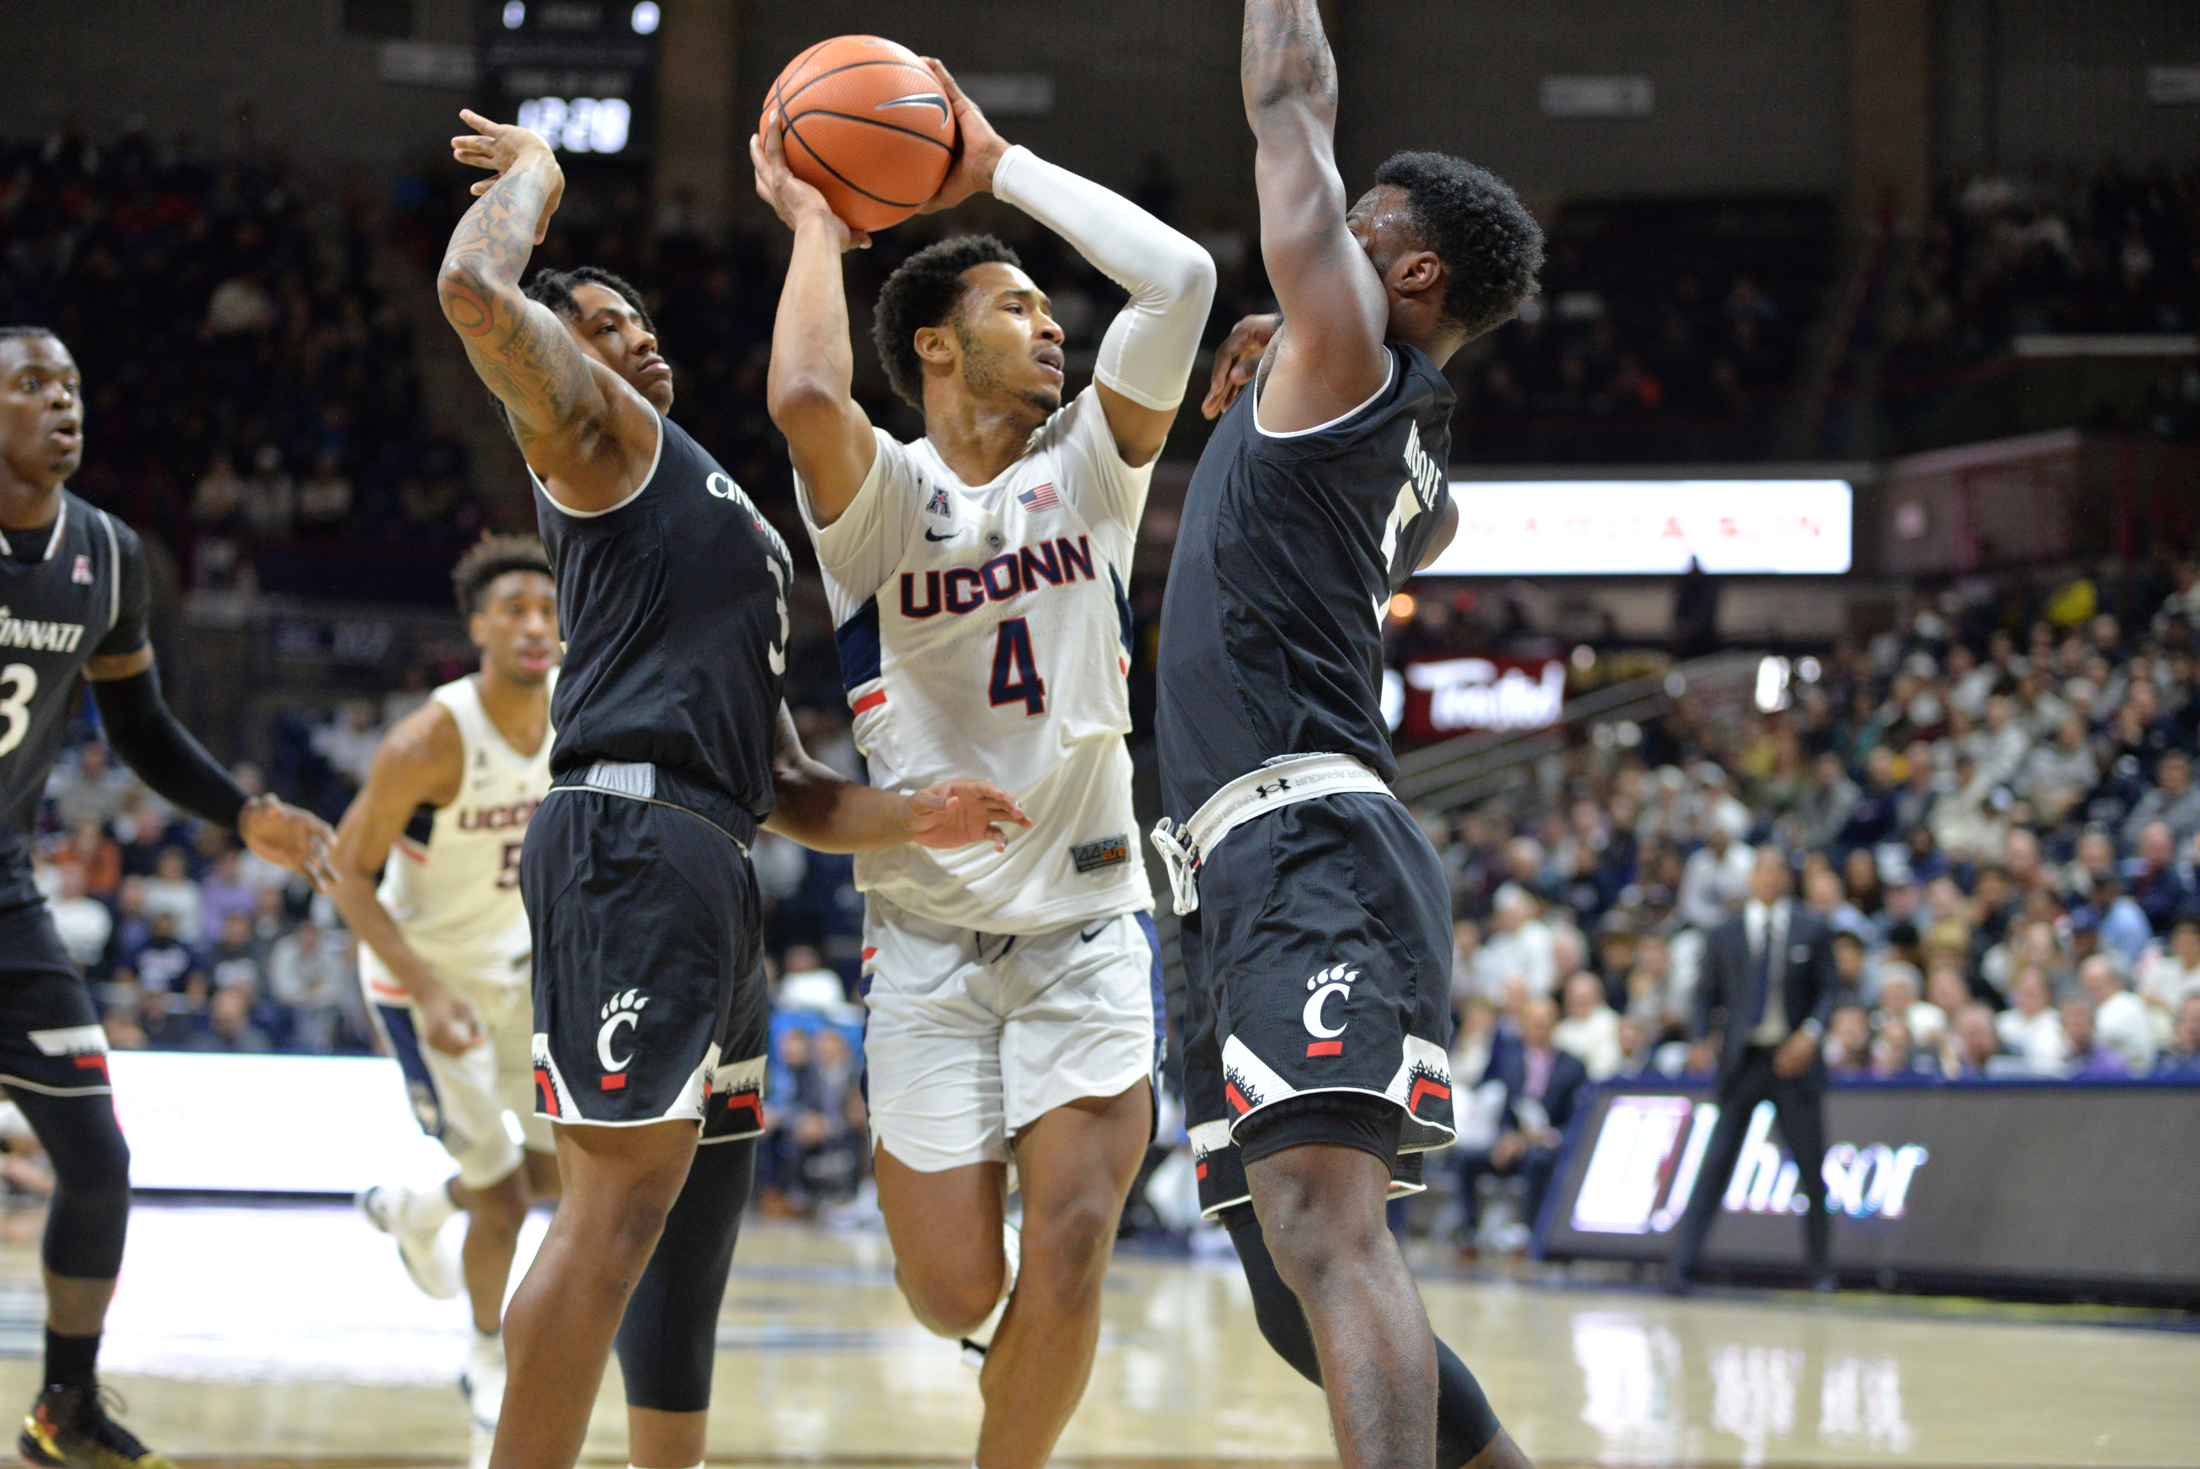 Junior guard Jalen Adams (4) fights off Cincinnati defenders during the Huskies 65-57 loss to the Bearcats in Gampel Pavilion on Saturday, Feb. 3, 2018. Adams leads the team in points and assists. (Amar Batra/The Daily Campus)